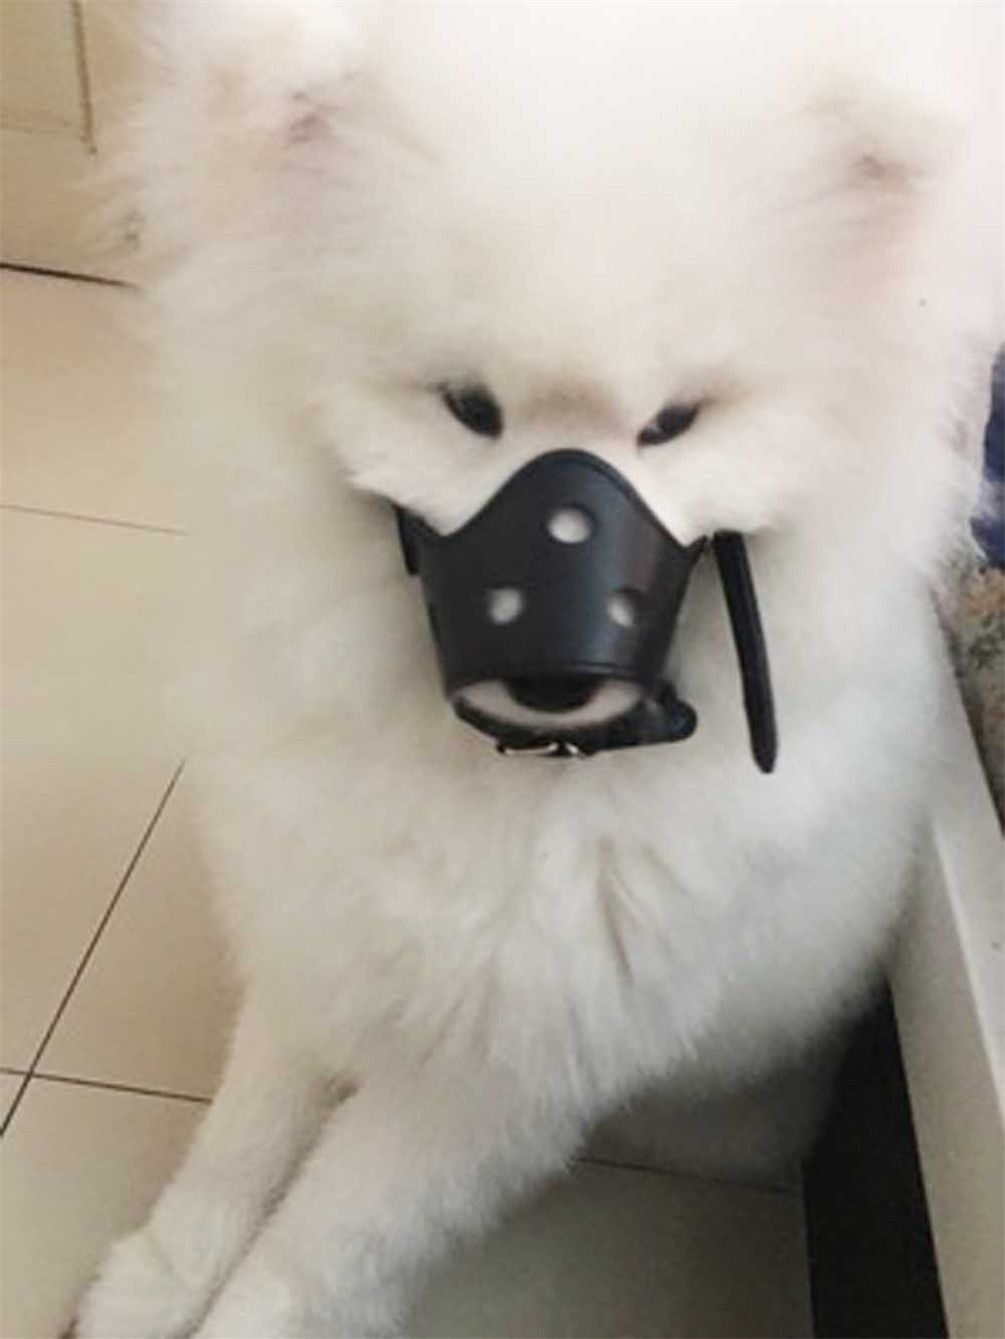 Dog Muzzle Leather For No Barking Biting Chewing Adjustable Allow Drinking Size Xs S M L Xl Fit Extra Small Medium And Extra L Dog Muzzle Pet Accessories Dogs